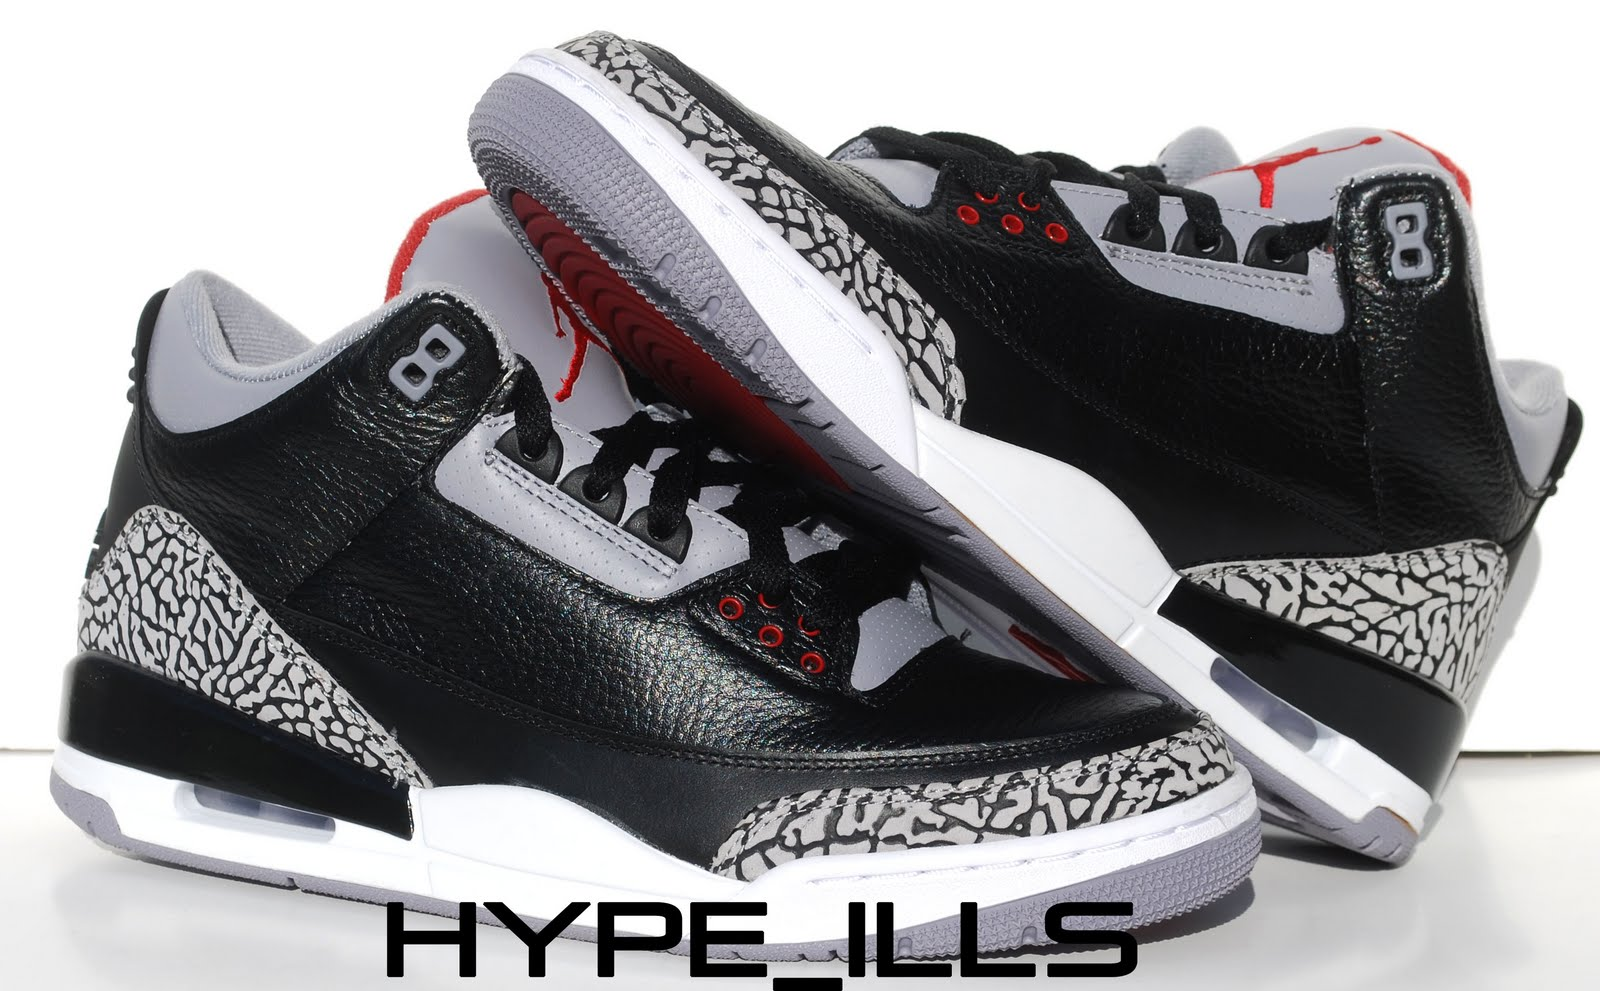 8d0013bad46b7a discount quick question cdp or 2011 black cement air jordan retro 3s b3268  10f9b  wholesale nike air jordan iii retro black cement 2011 342ec 7d083